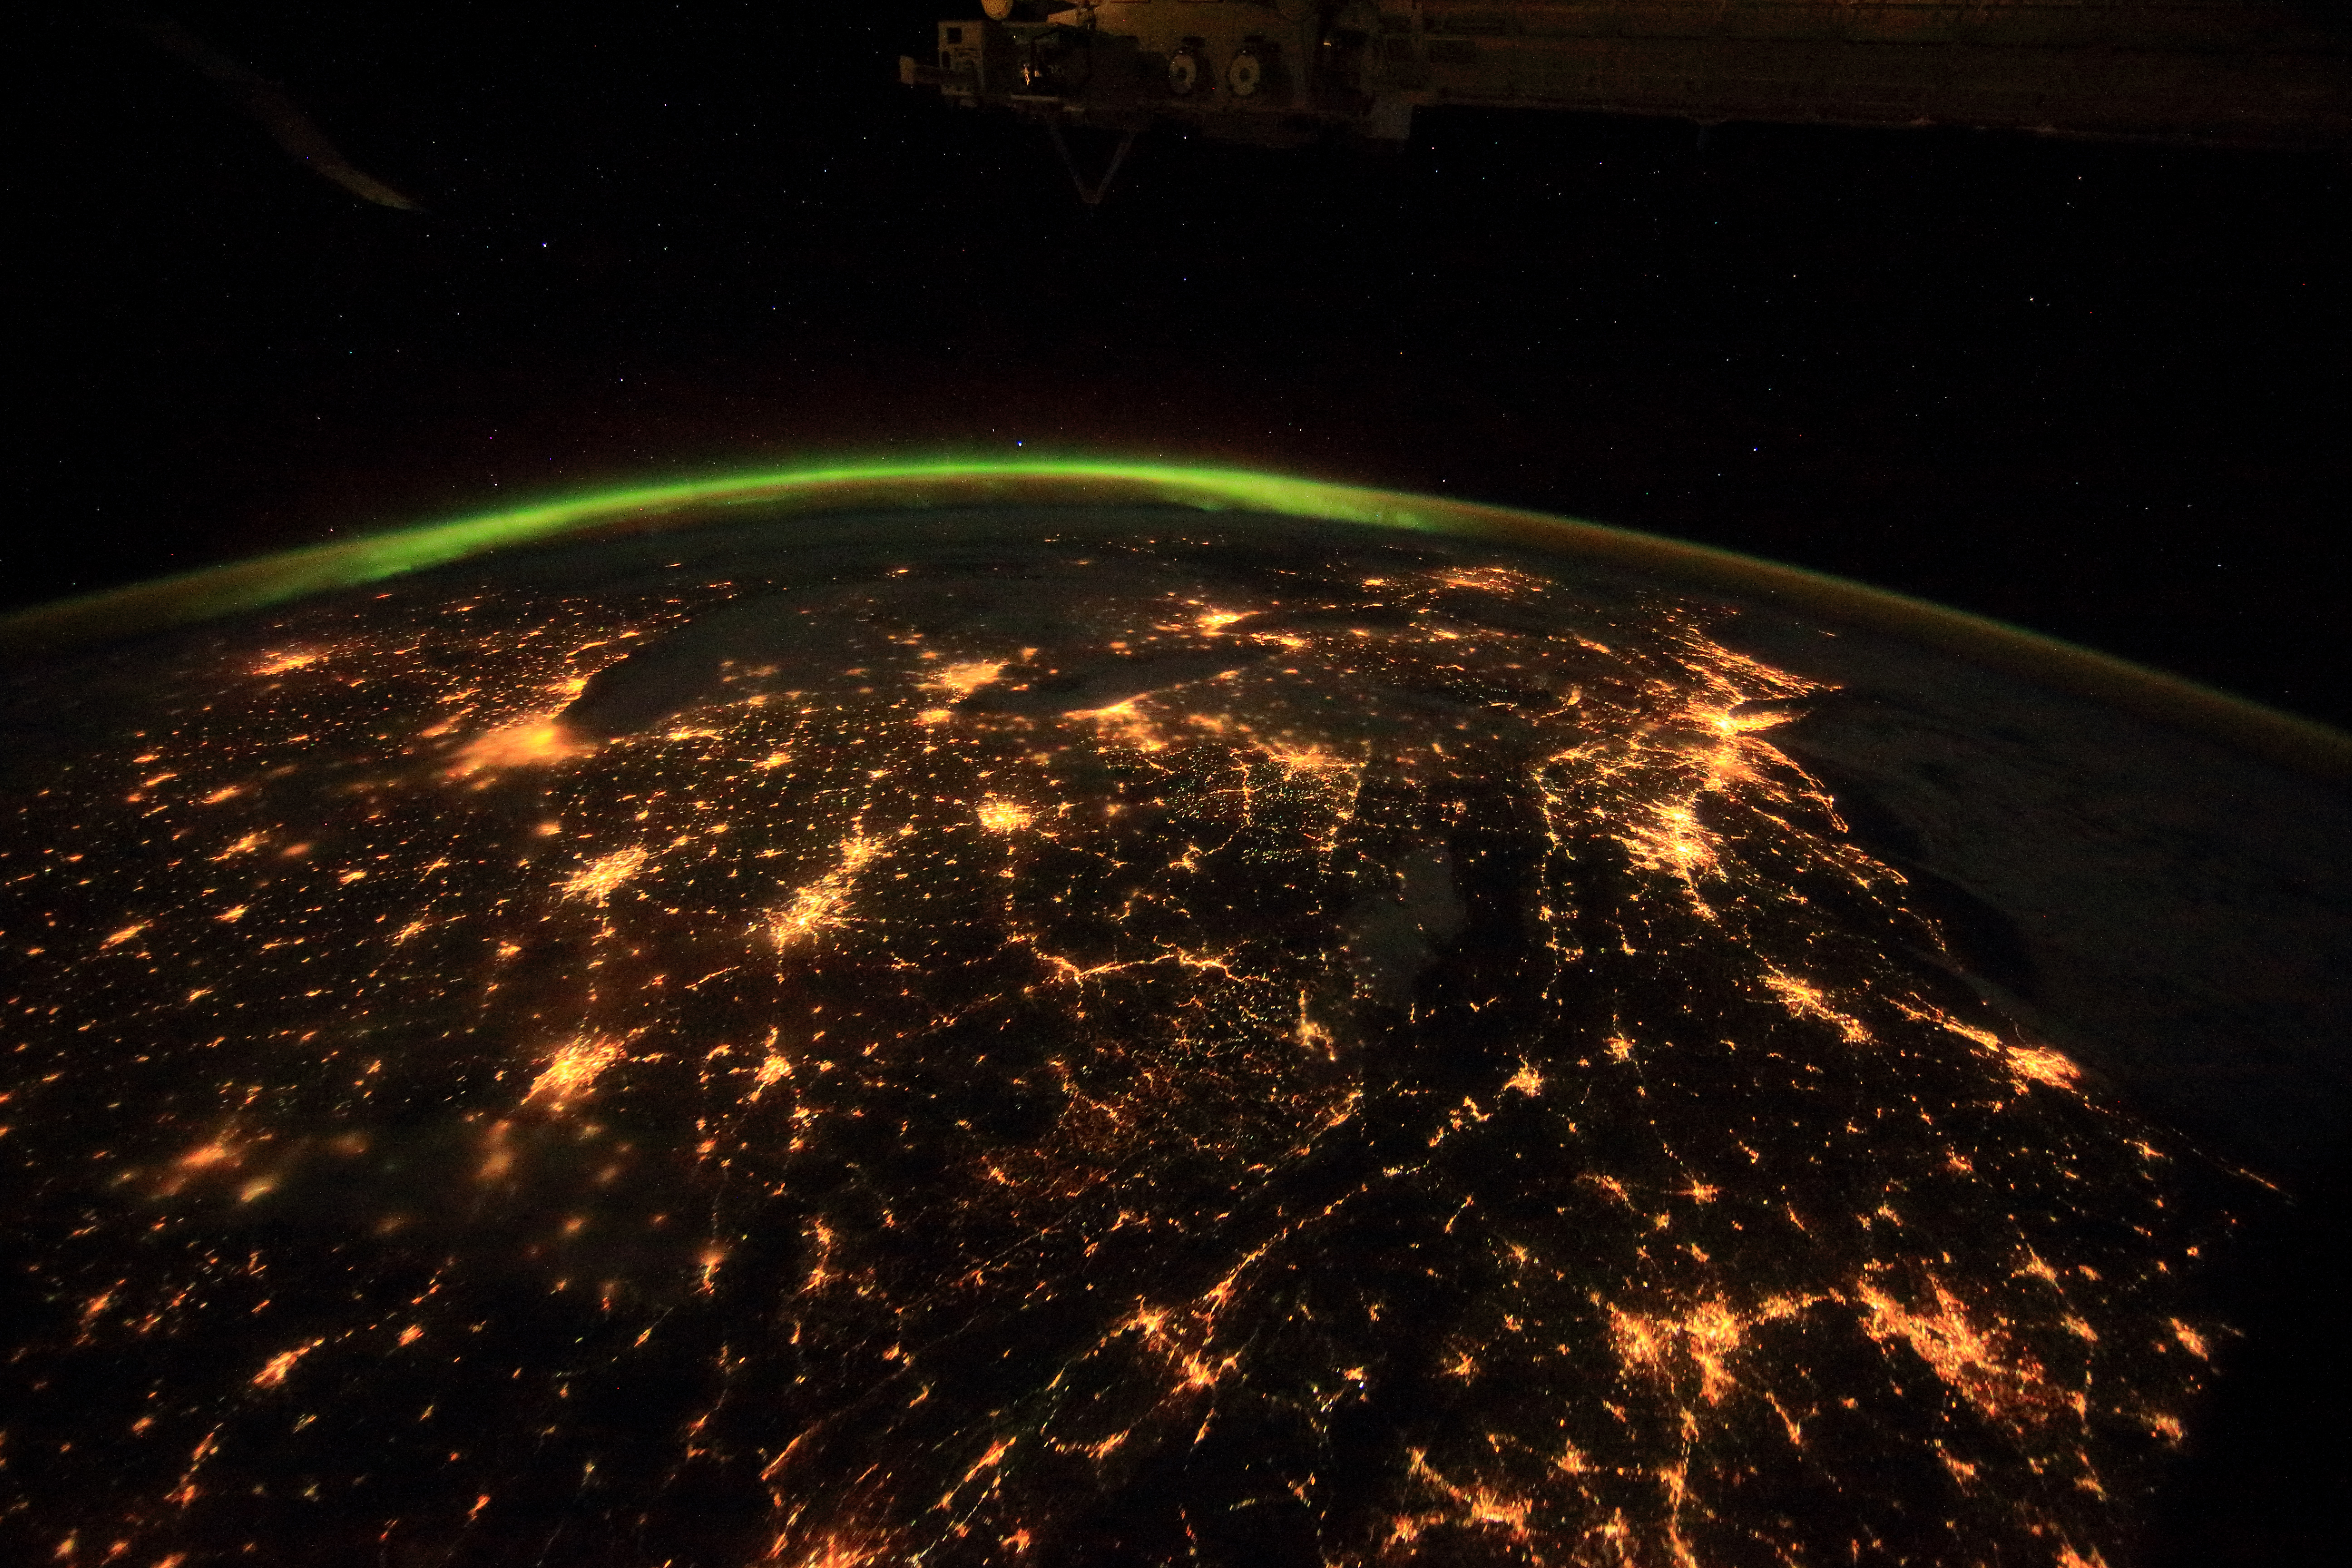 A nocturnal view of city lights from aboard the ISS, as seen in the IMAX film A Beautiful Planet.